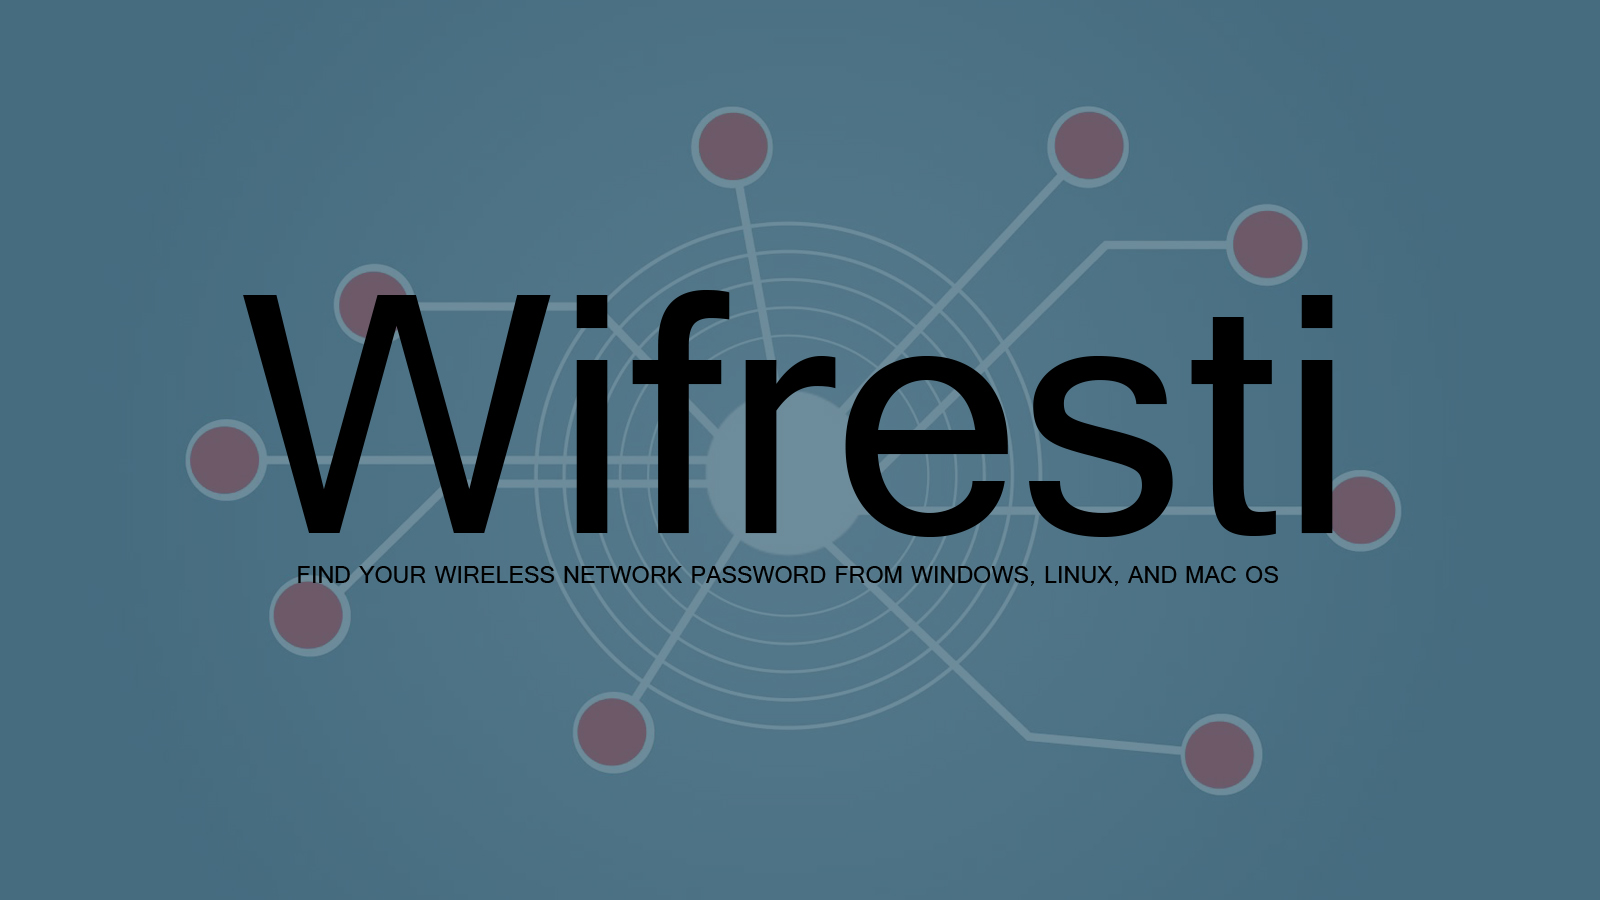 Wifresti - Find Your Wireless Network Password from Windows, Linux, and Mac OS